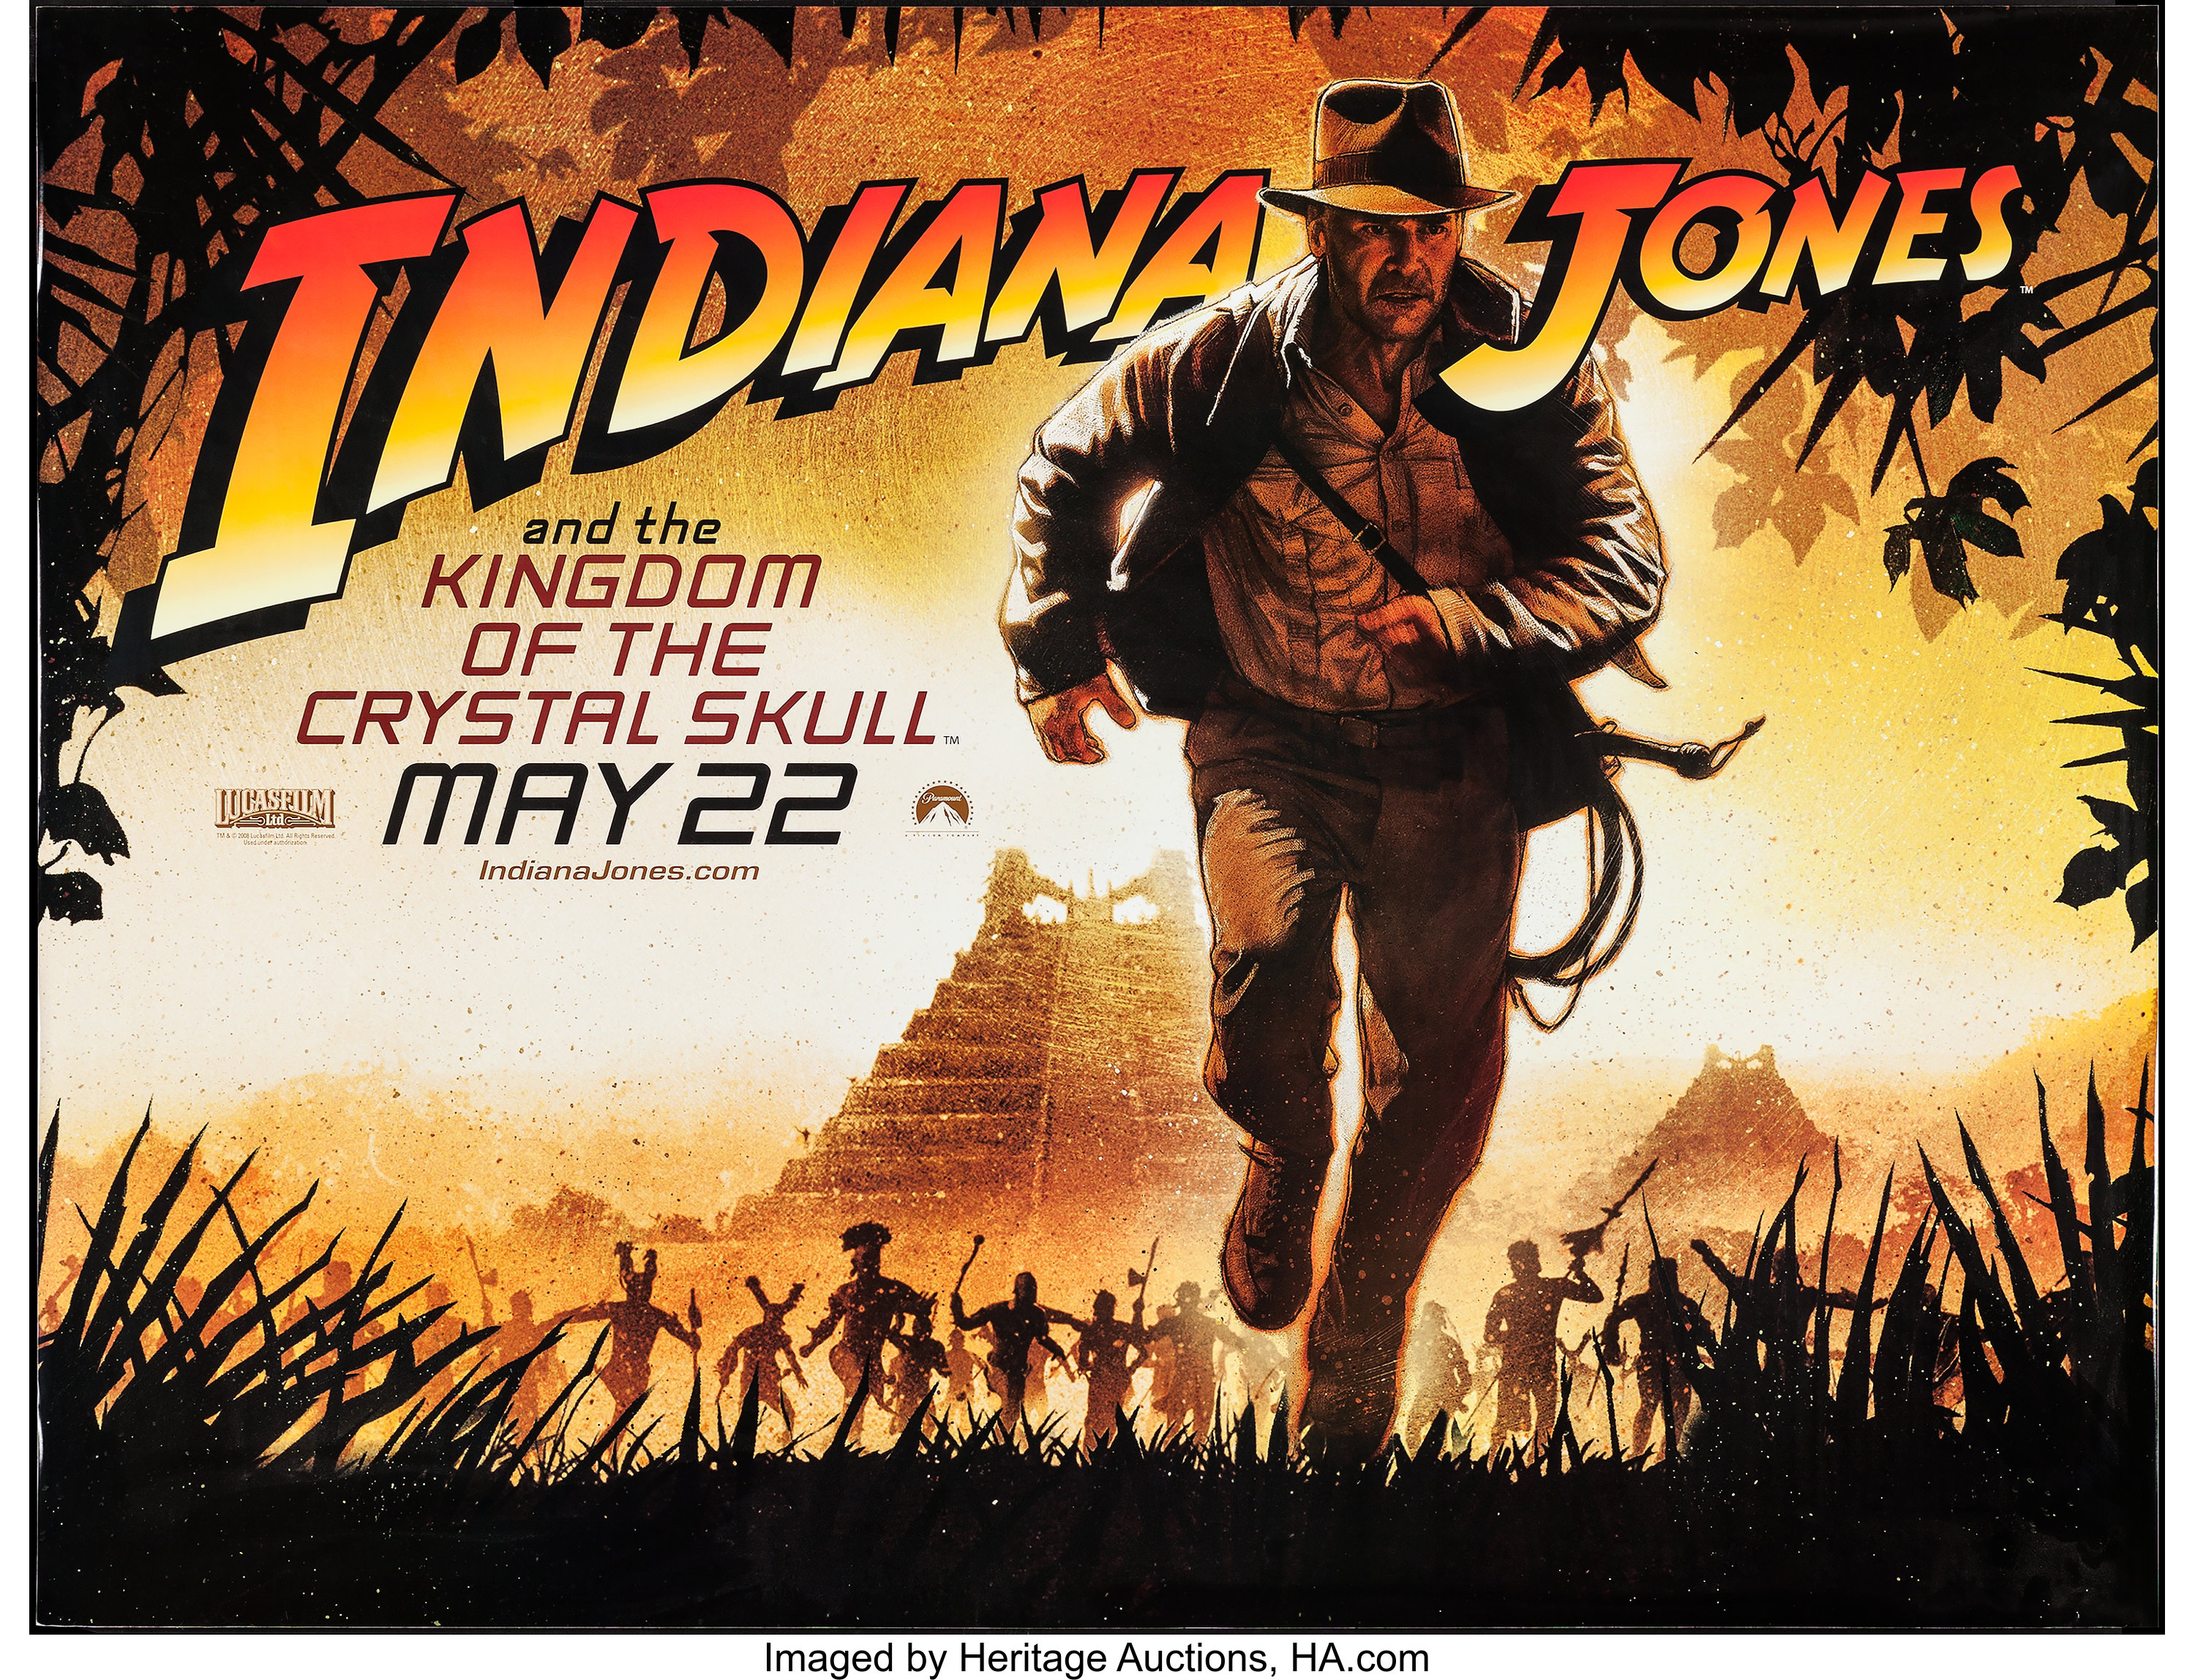 Indiana Jones And The Kingdom Of The Crystal Skull Paramount Lot 51215 Heritage Auctions